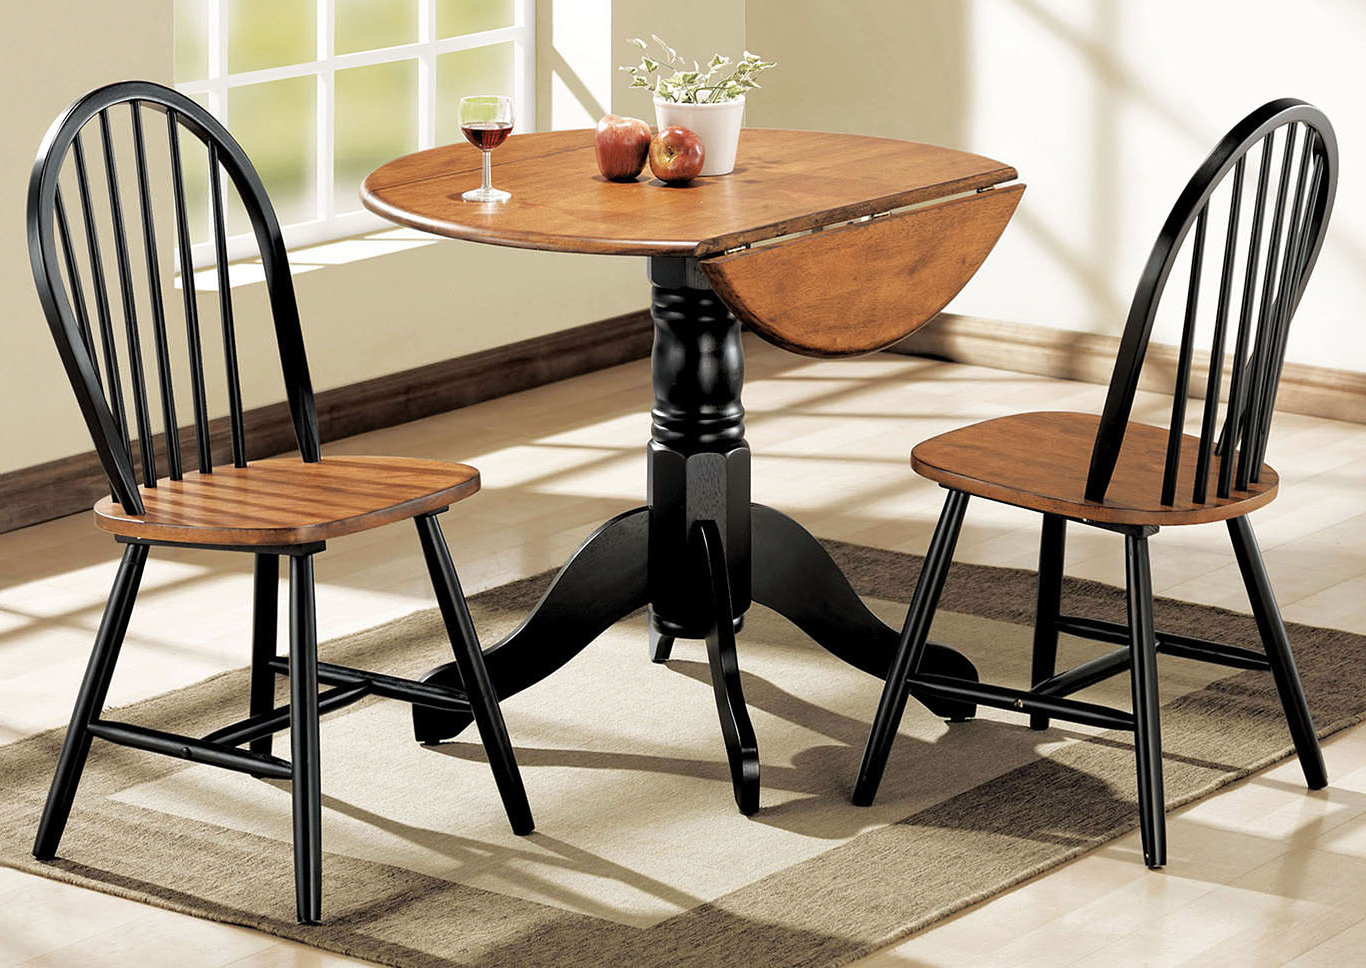 Trendy Transitional 3 Piece Drop Leaf Casual Dining Tables Set With Regard To Wine Country Furniture Mason Cherry/black Dining Set (Set Of 3) (View 22 of 25)